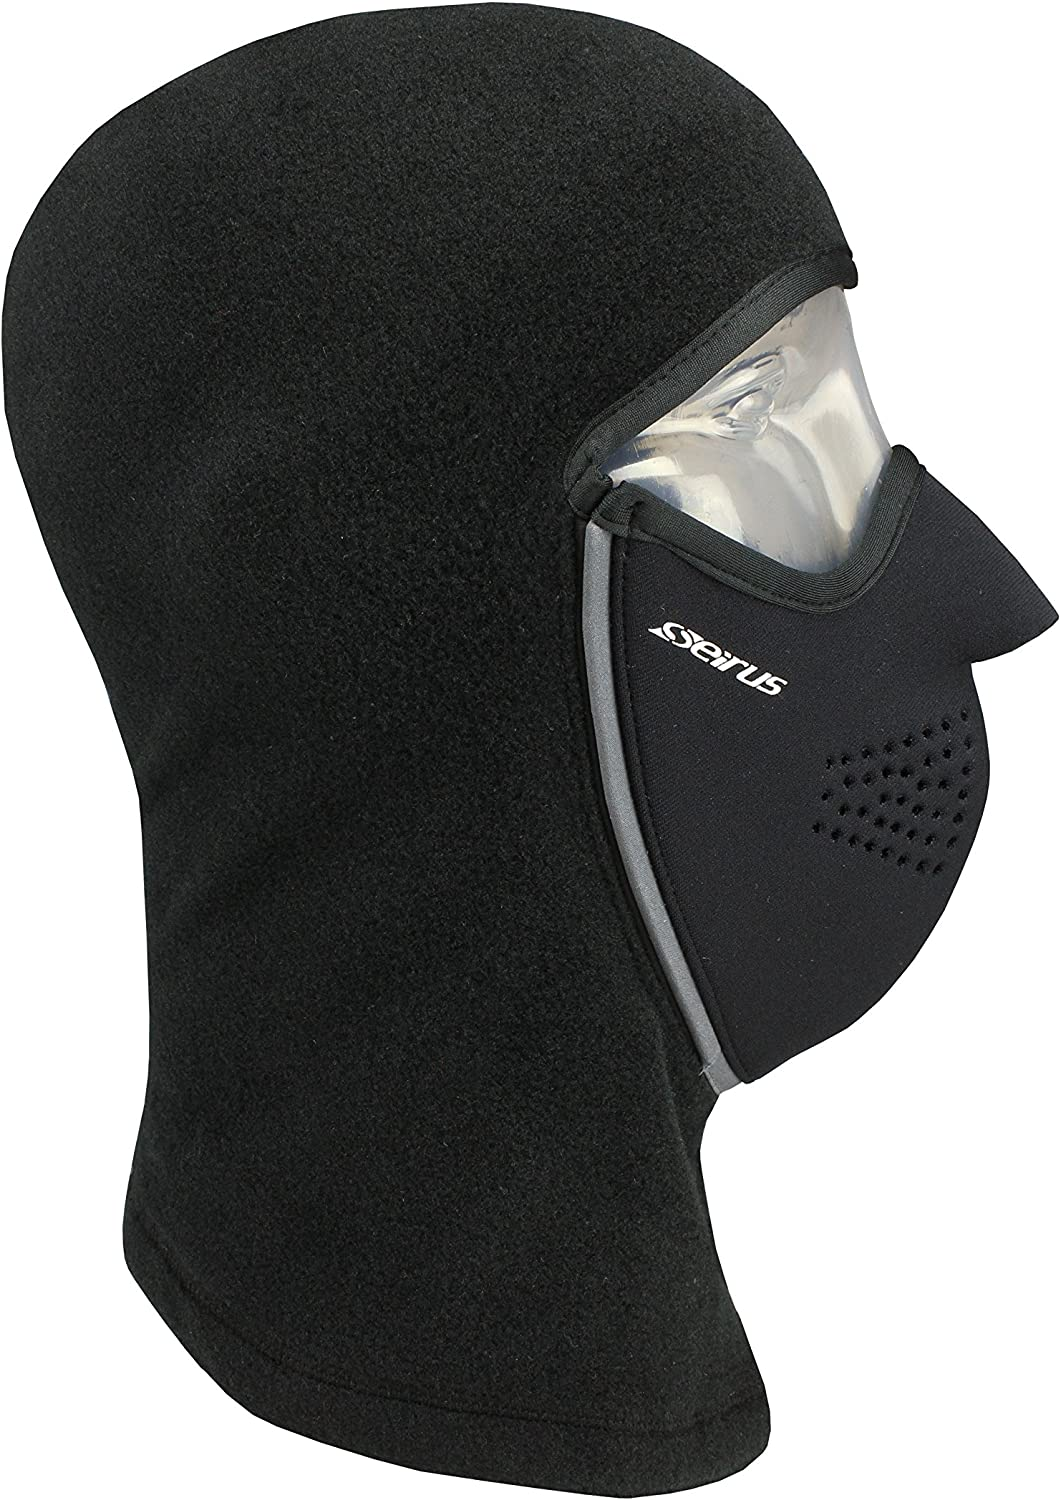 Seirus Innovation Magne Mask Convertible Combo Clava